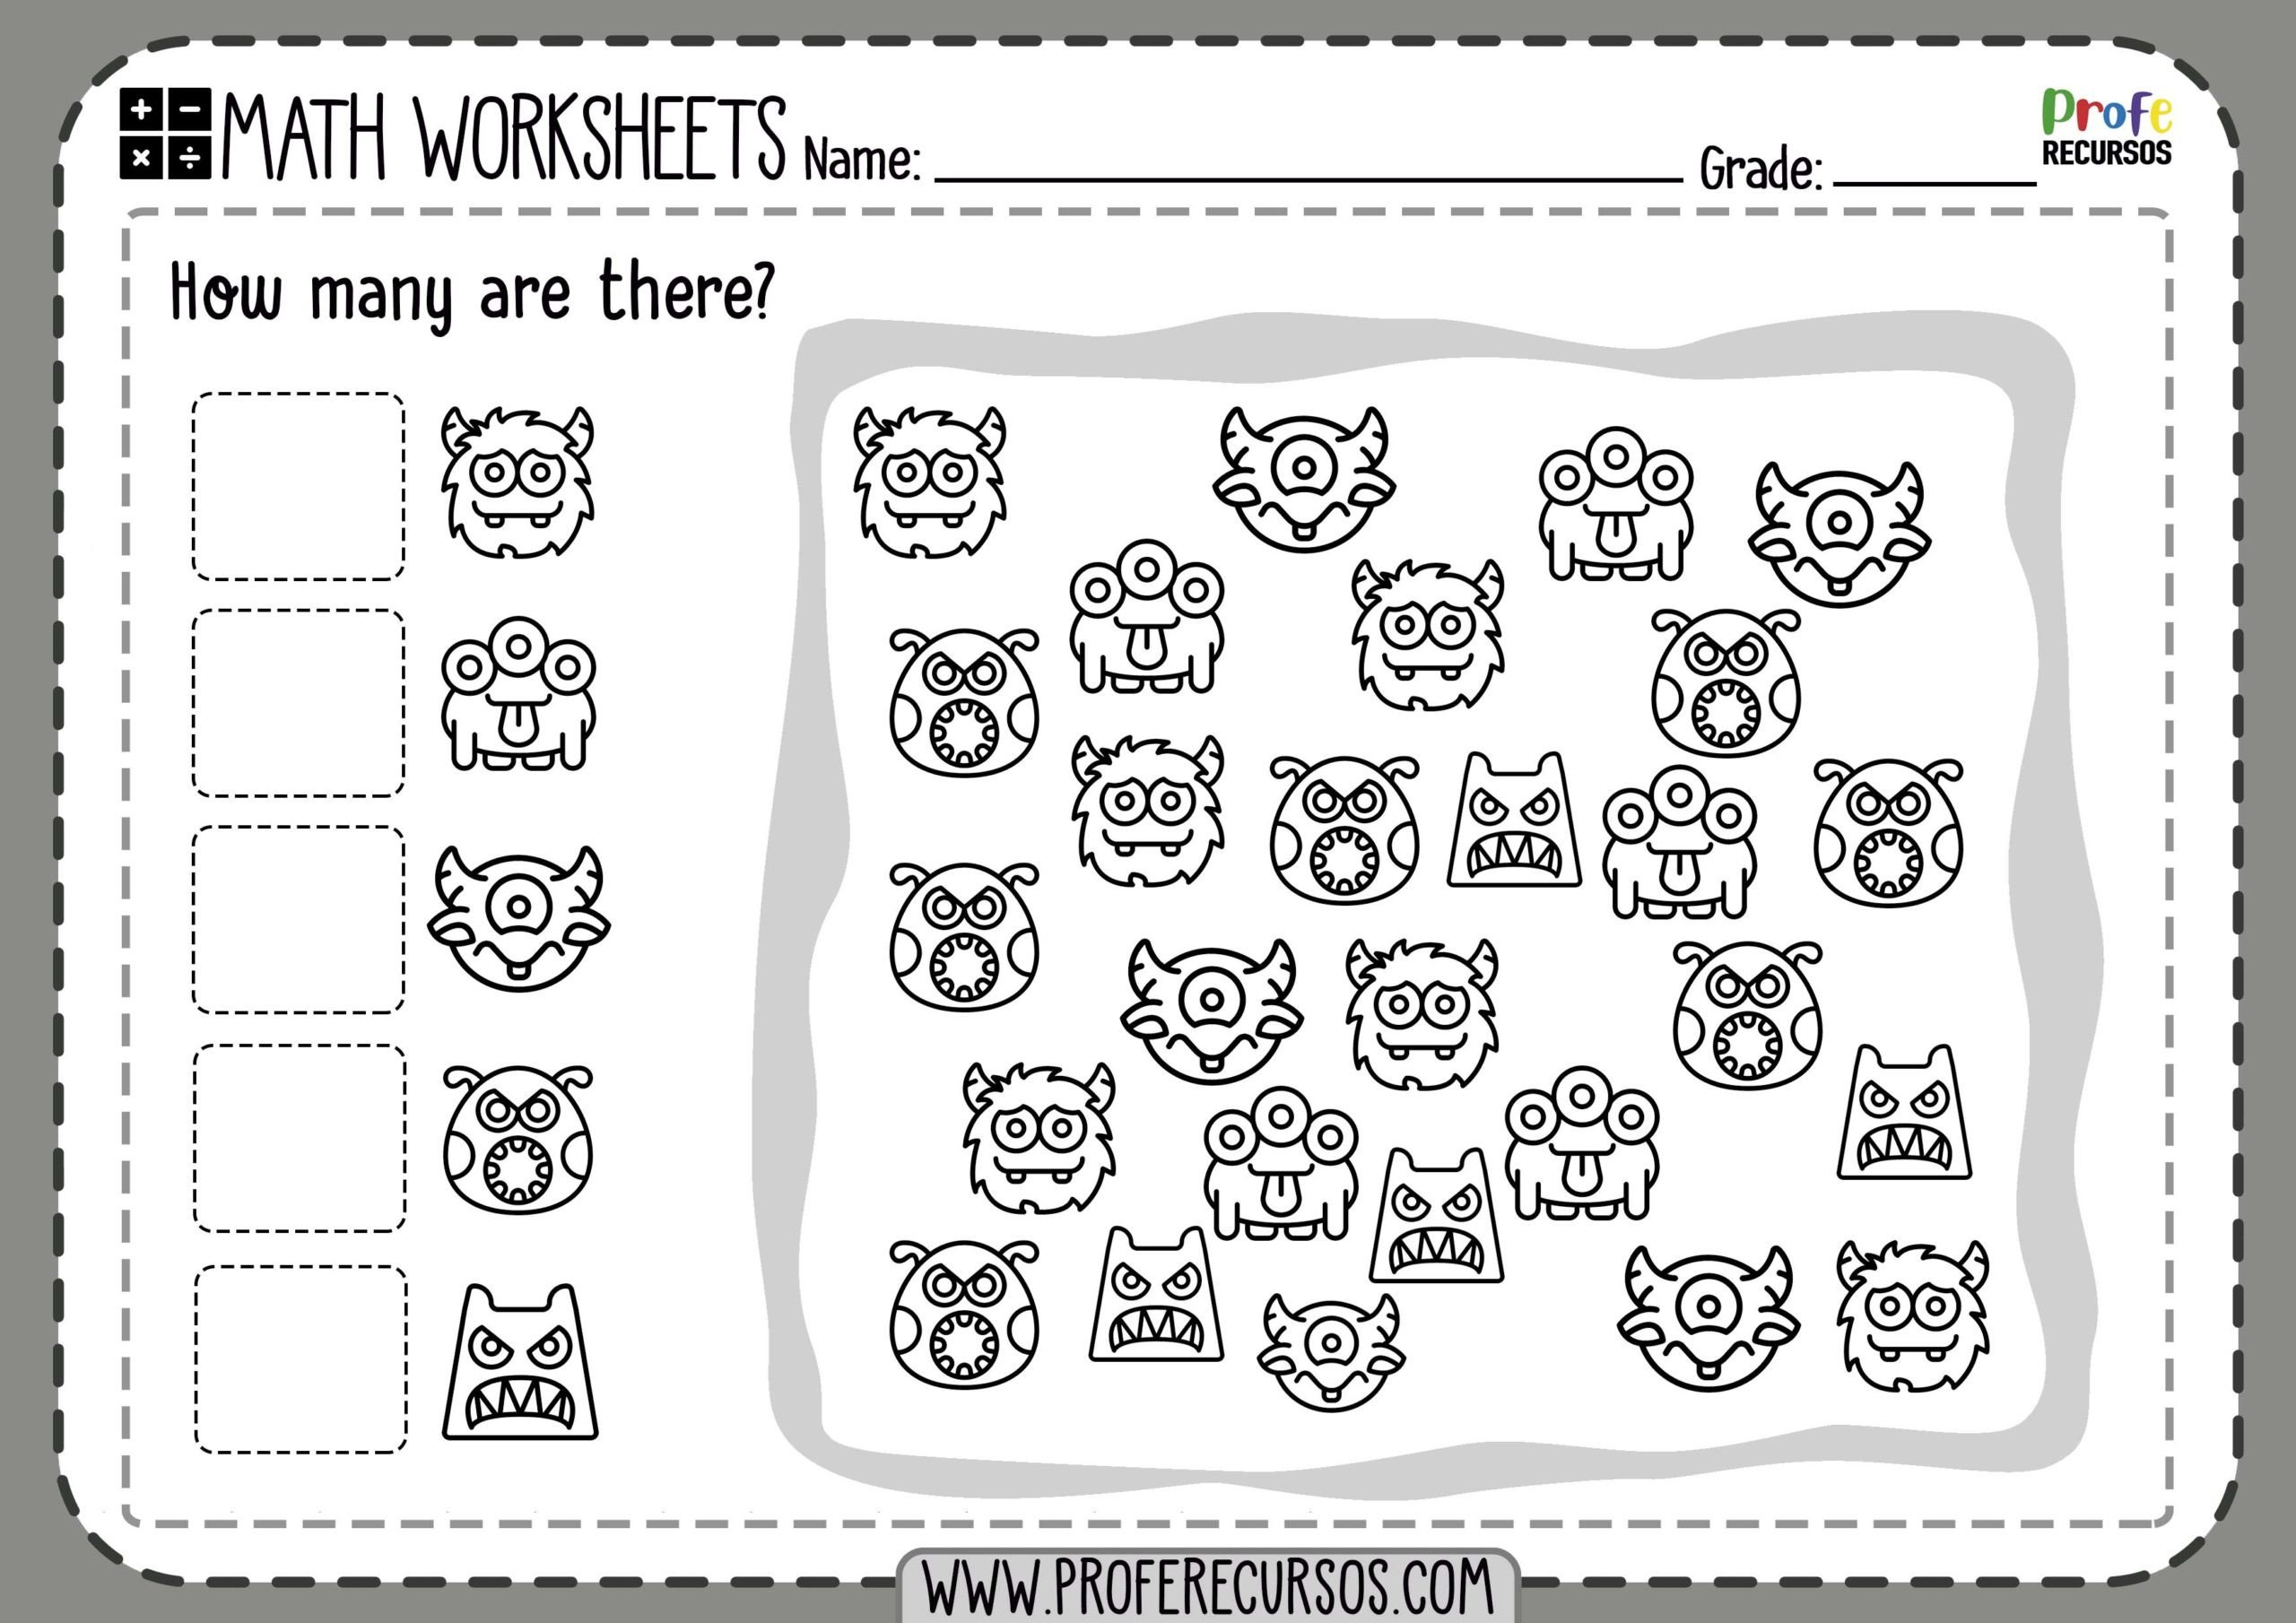 kindergarten math worksheetsg free online printable missing numbers on 100s board